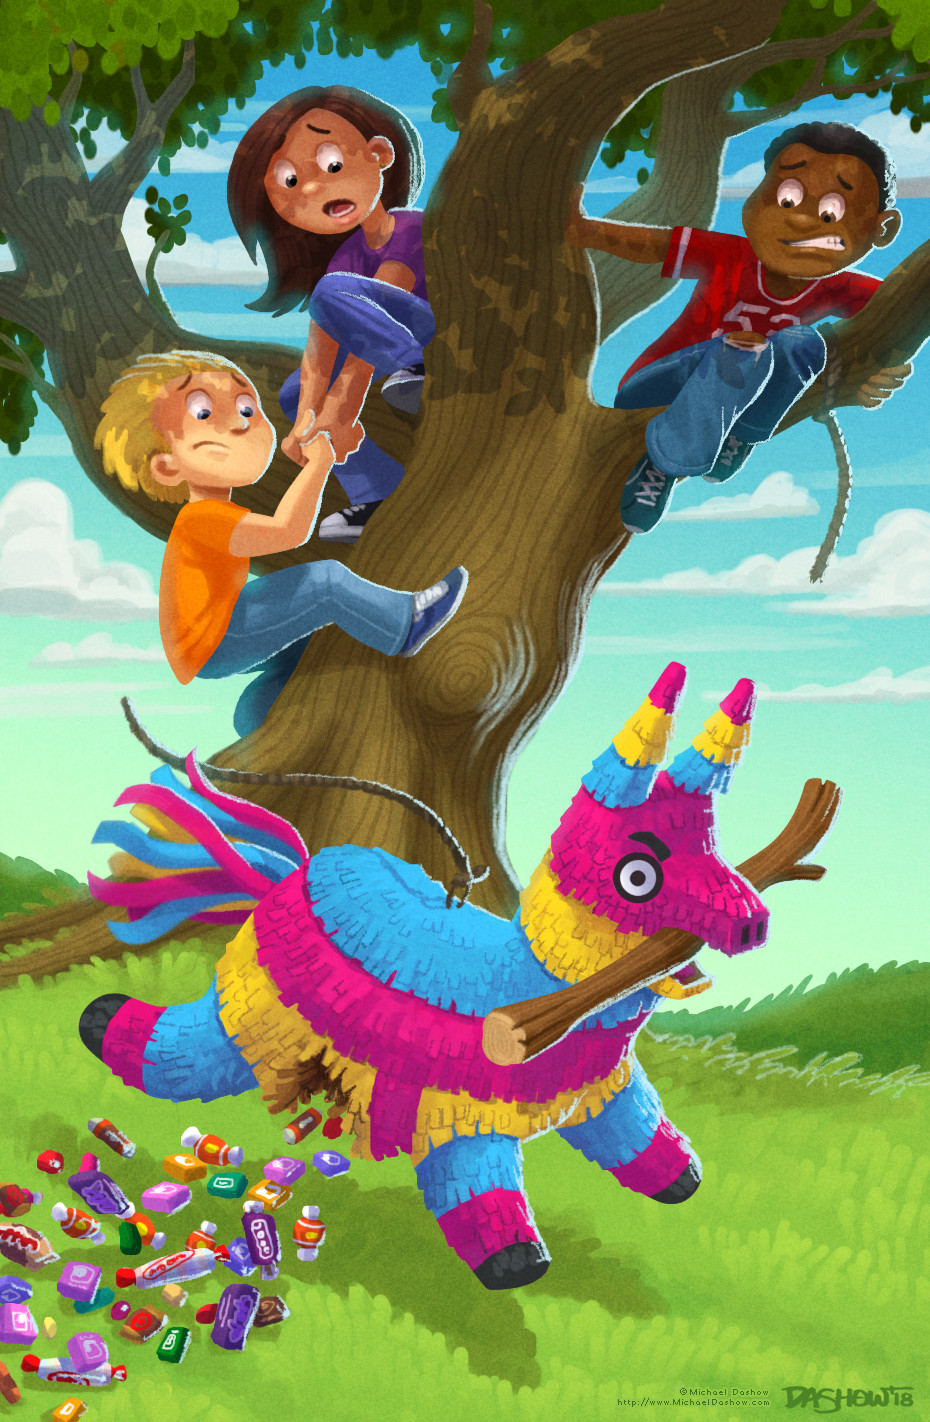 Michael dashow wild pinata 03 color 930x1422 signed